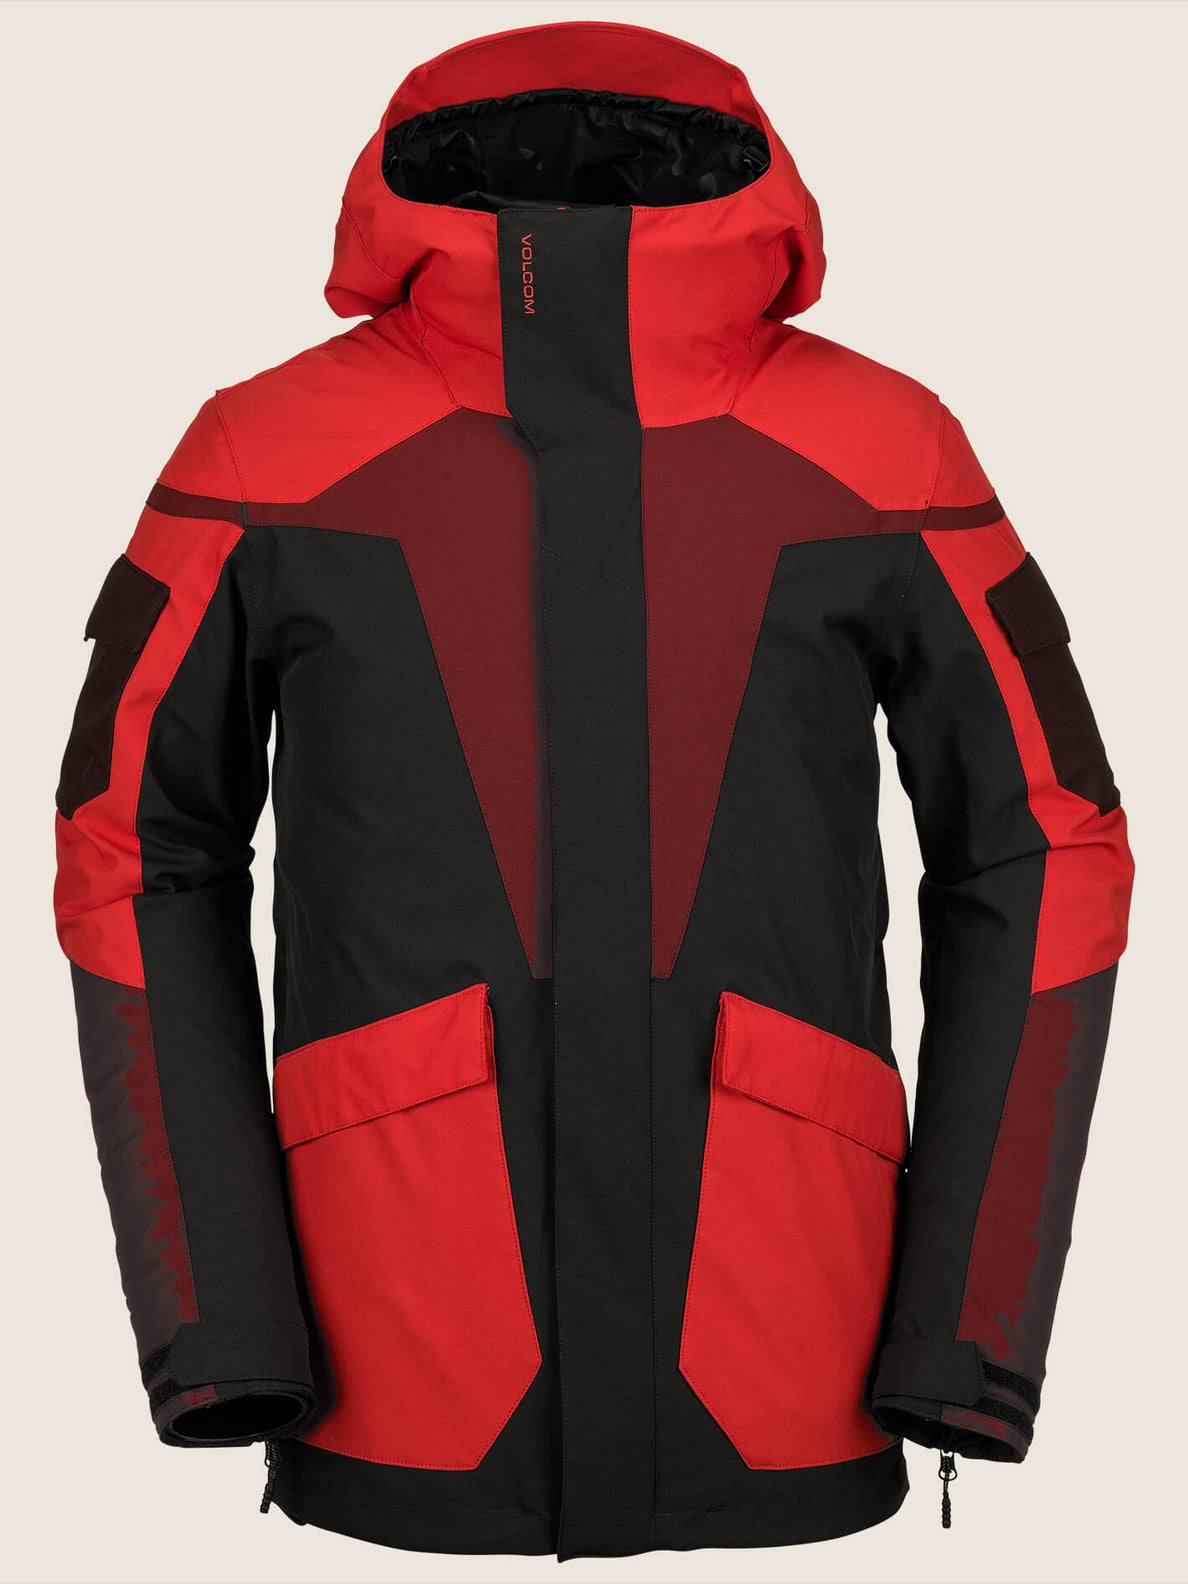 Utility Jacket In Black Red, Front View